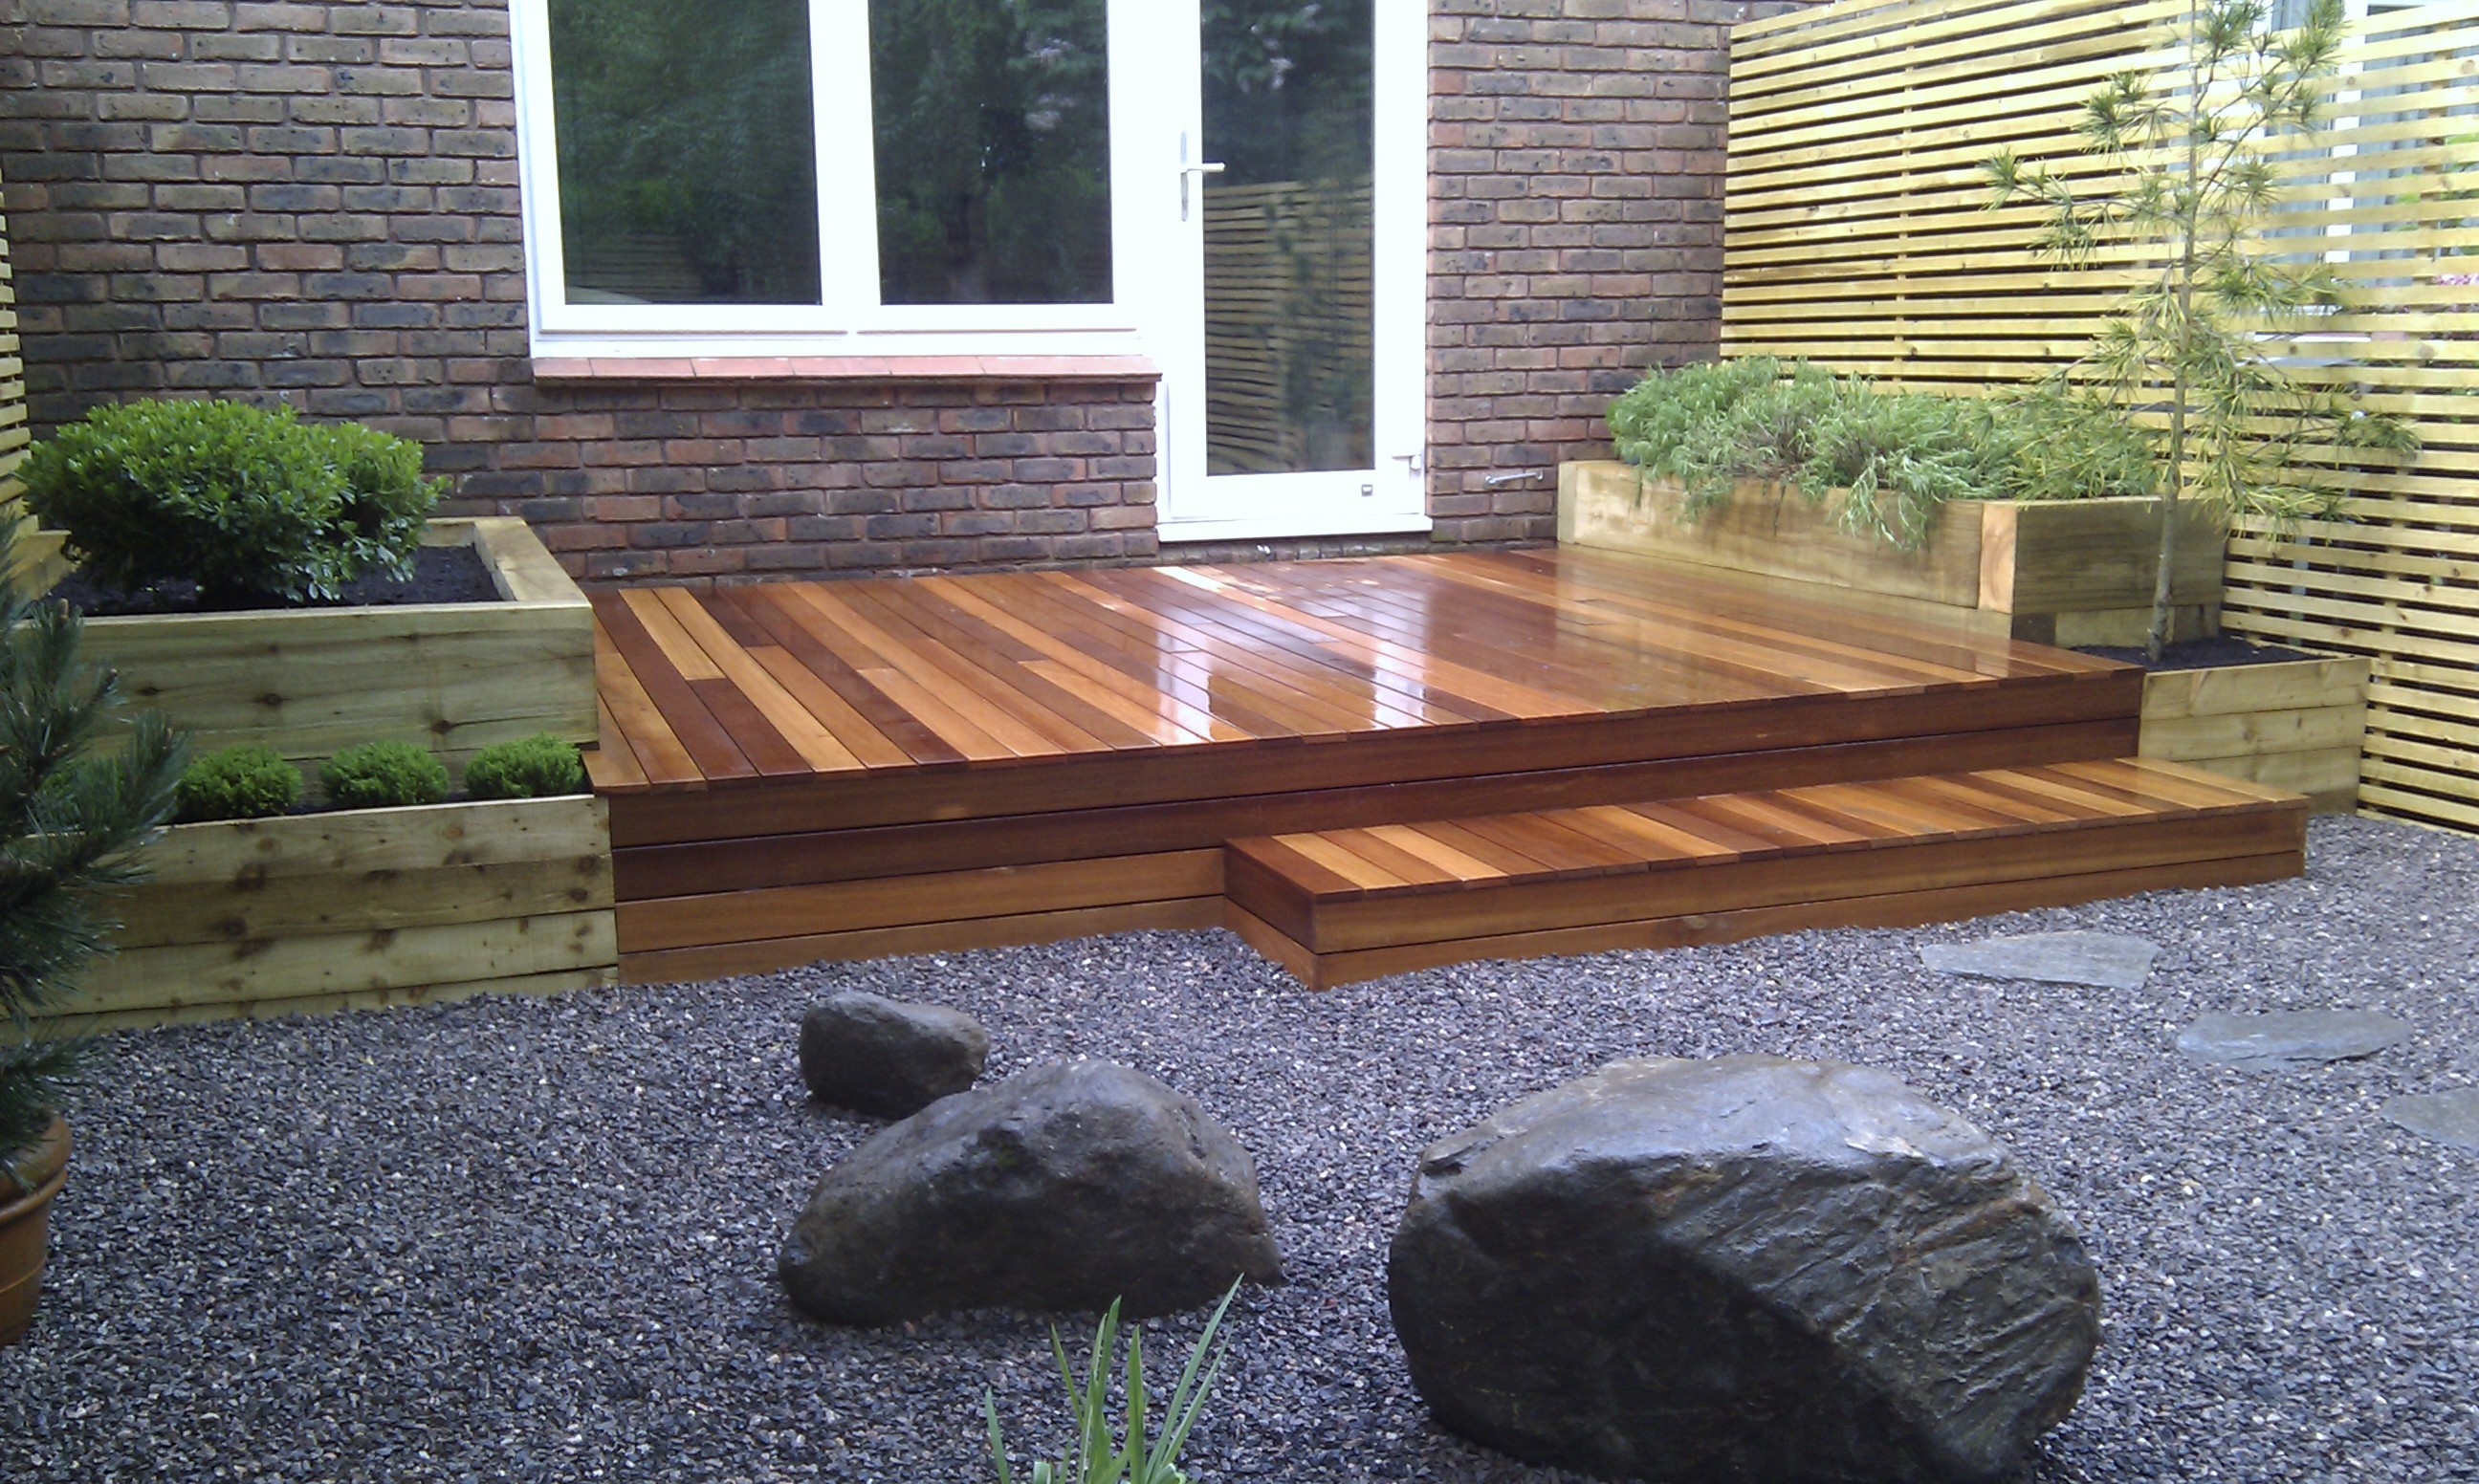 hardwood decking minimalist limestone chippings privacy screen south east london (9)